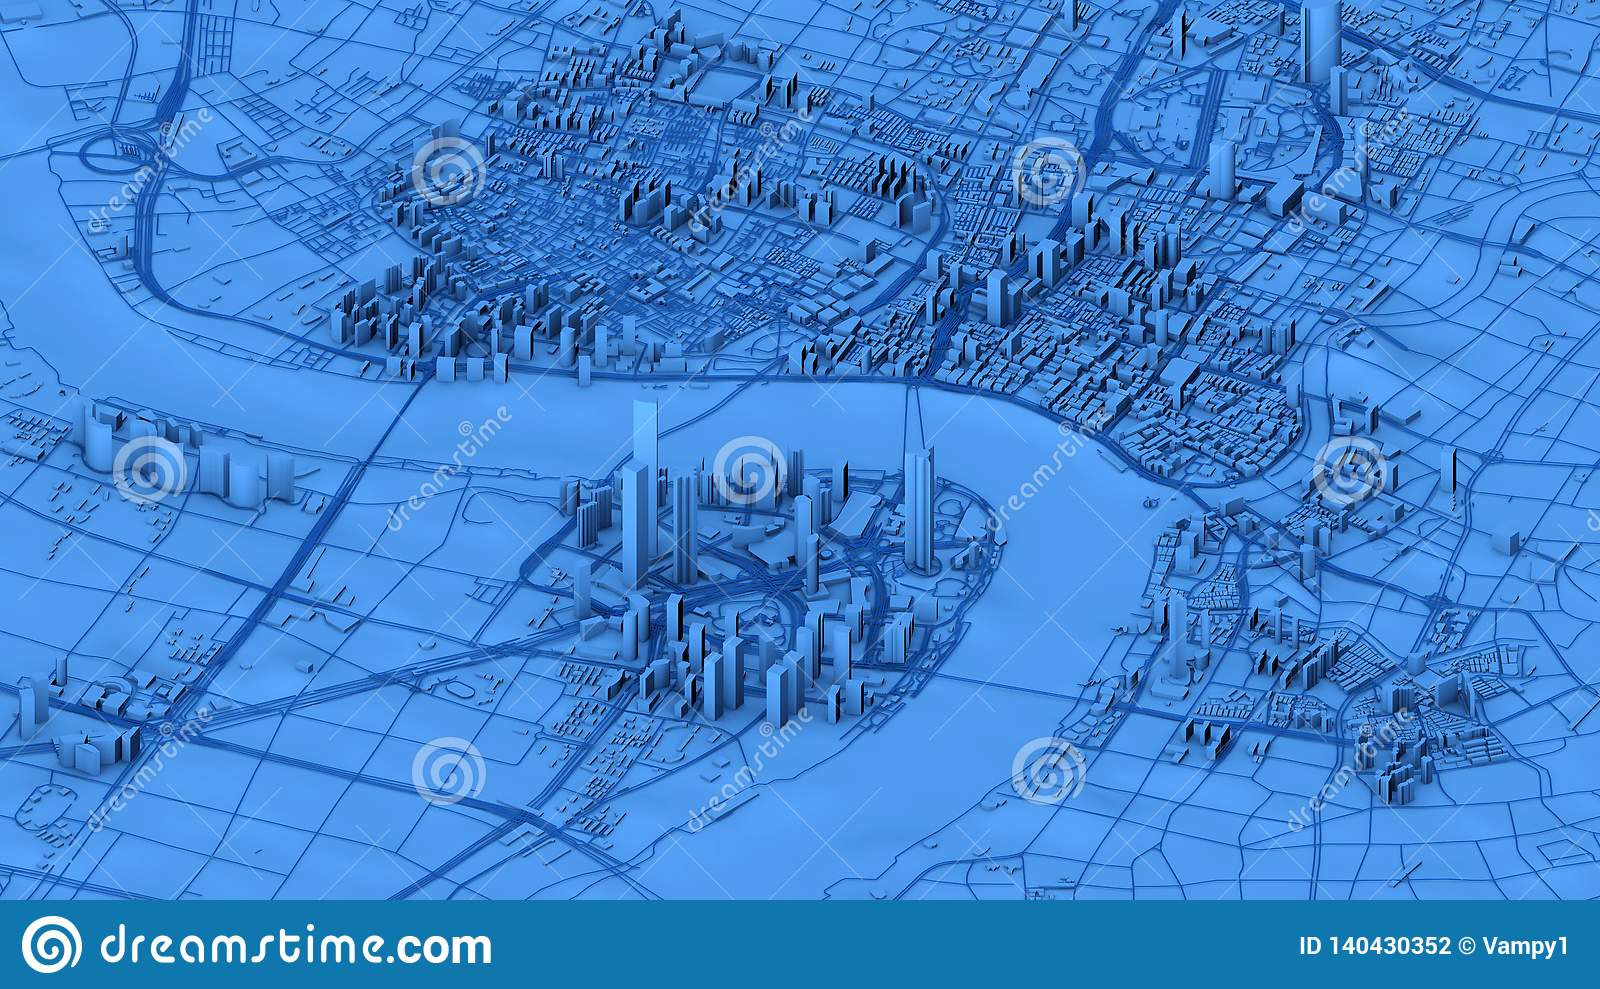 Satellite view of Shanghai, map of the city with house and building. Skyscrapers. China